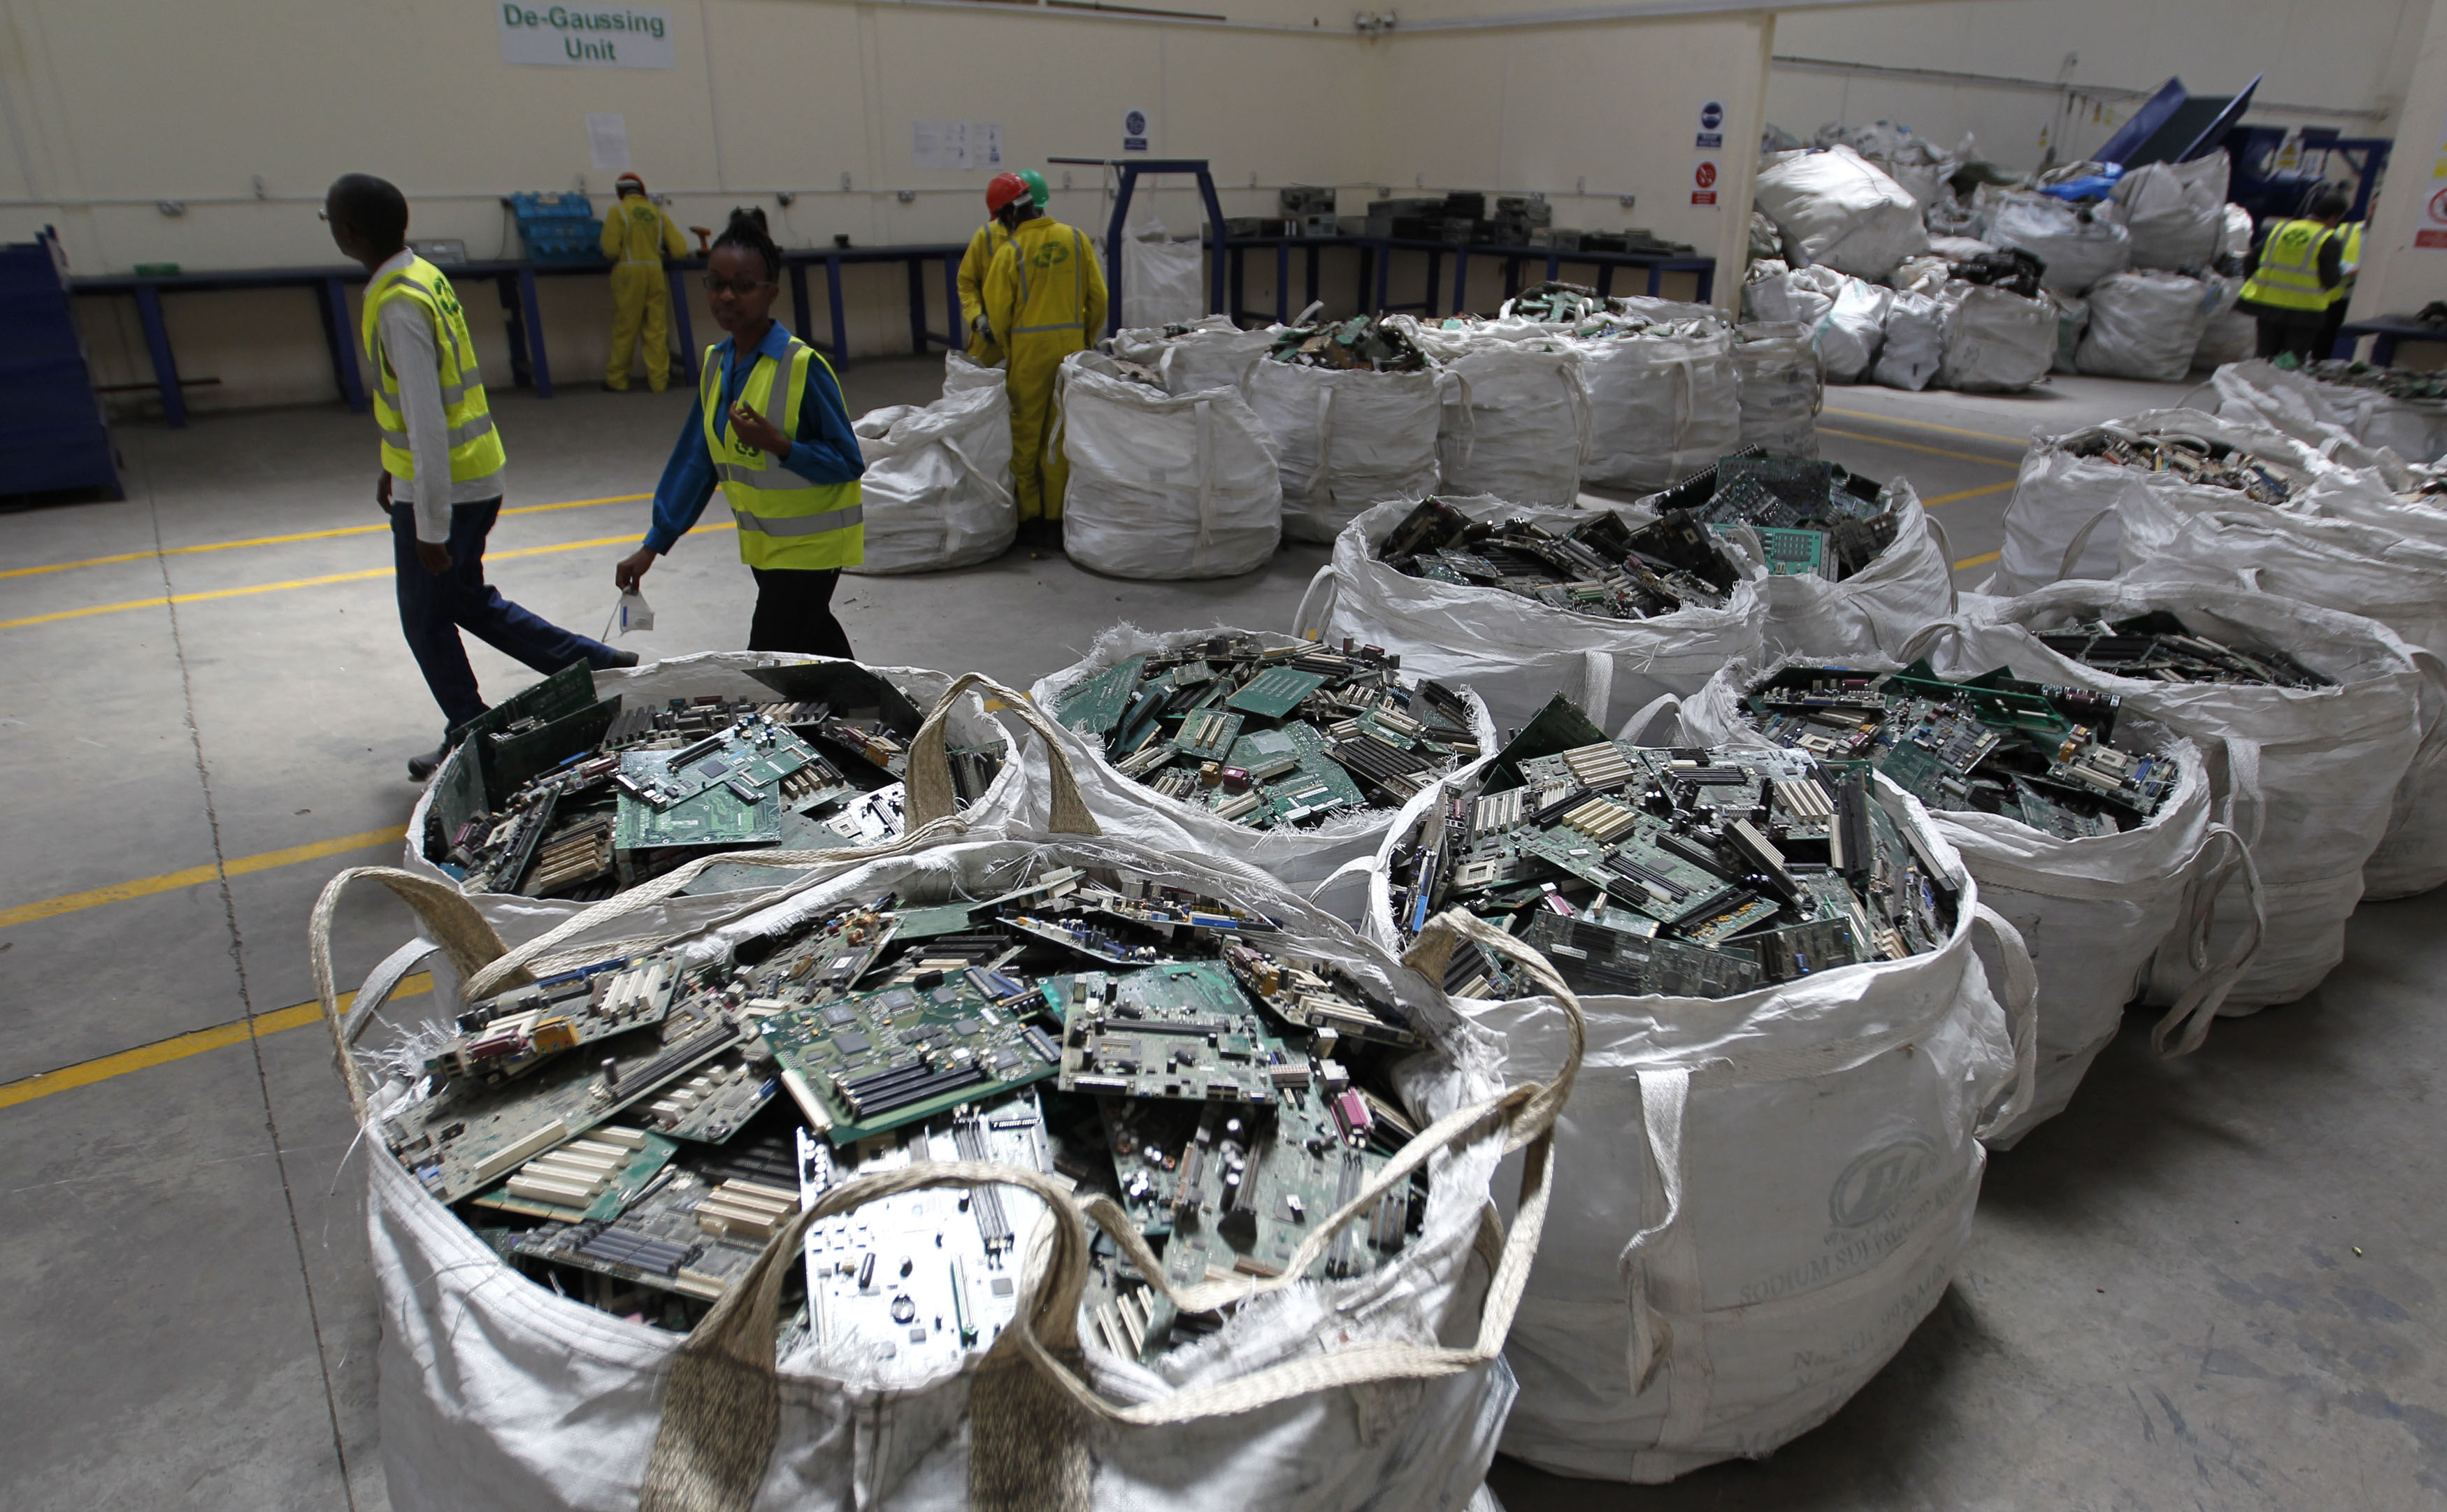 Employees walk past sorted parts of discarded computers and other electronics for recycling at the EACR facility in Athi River near Kenya's capital Nairobi